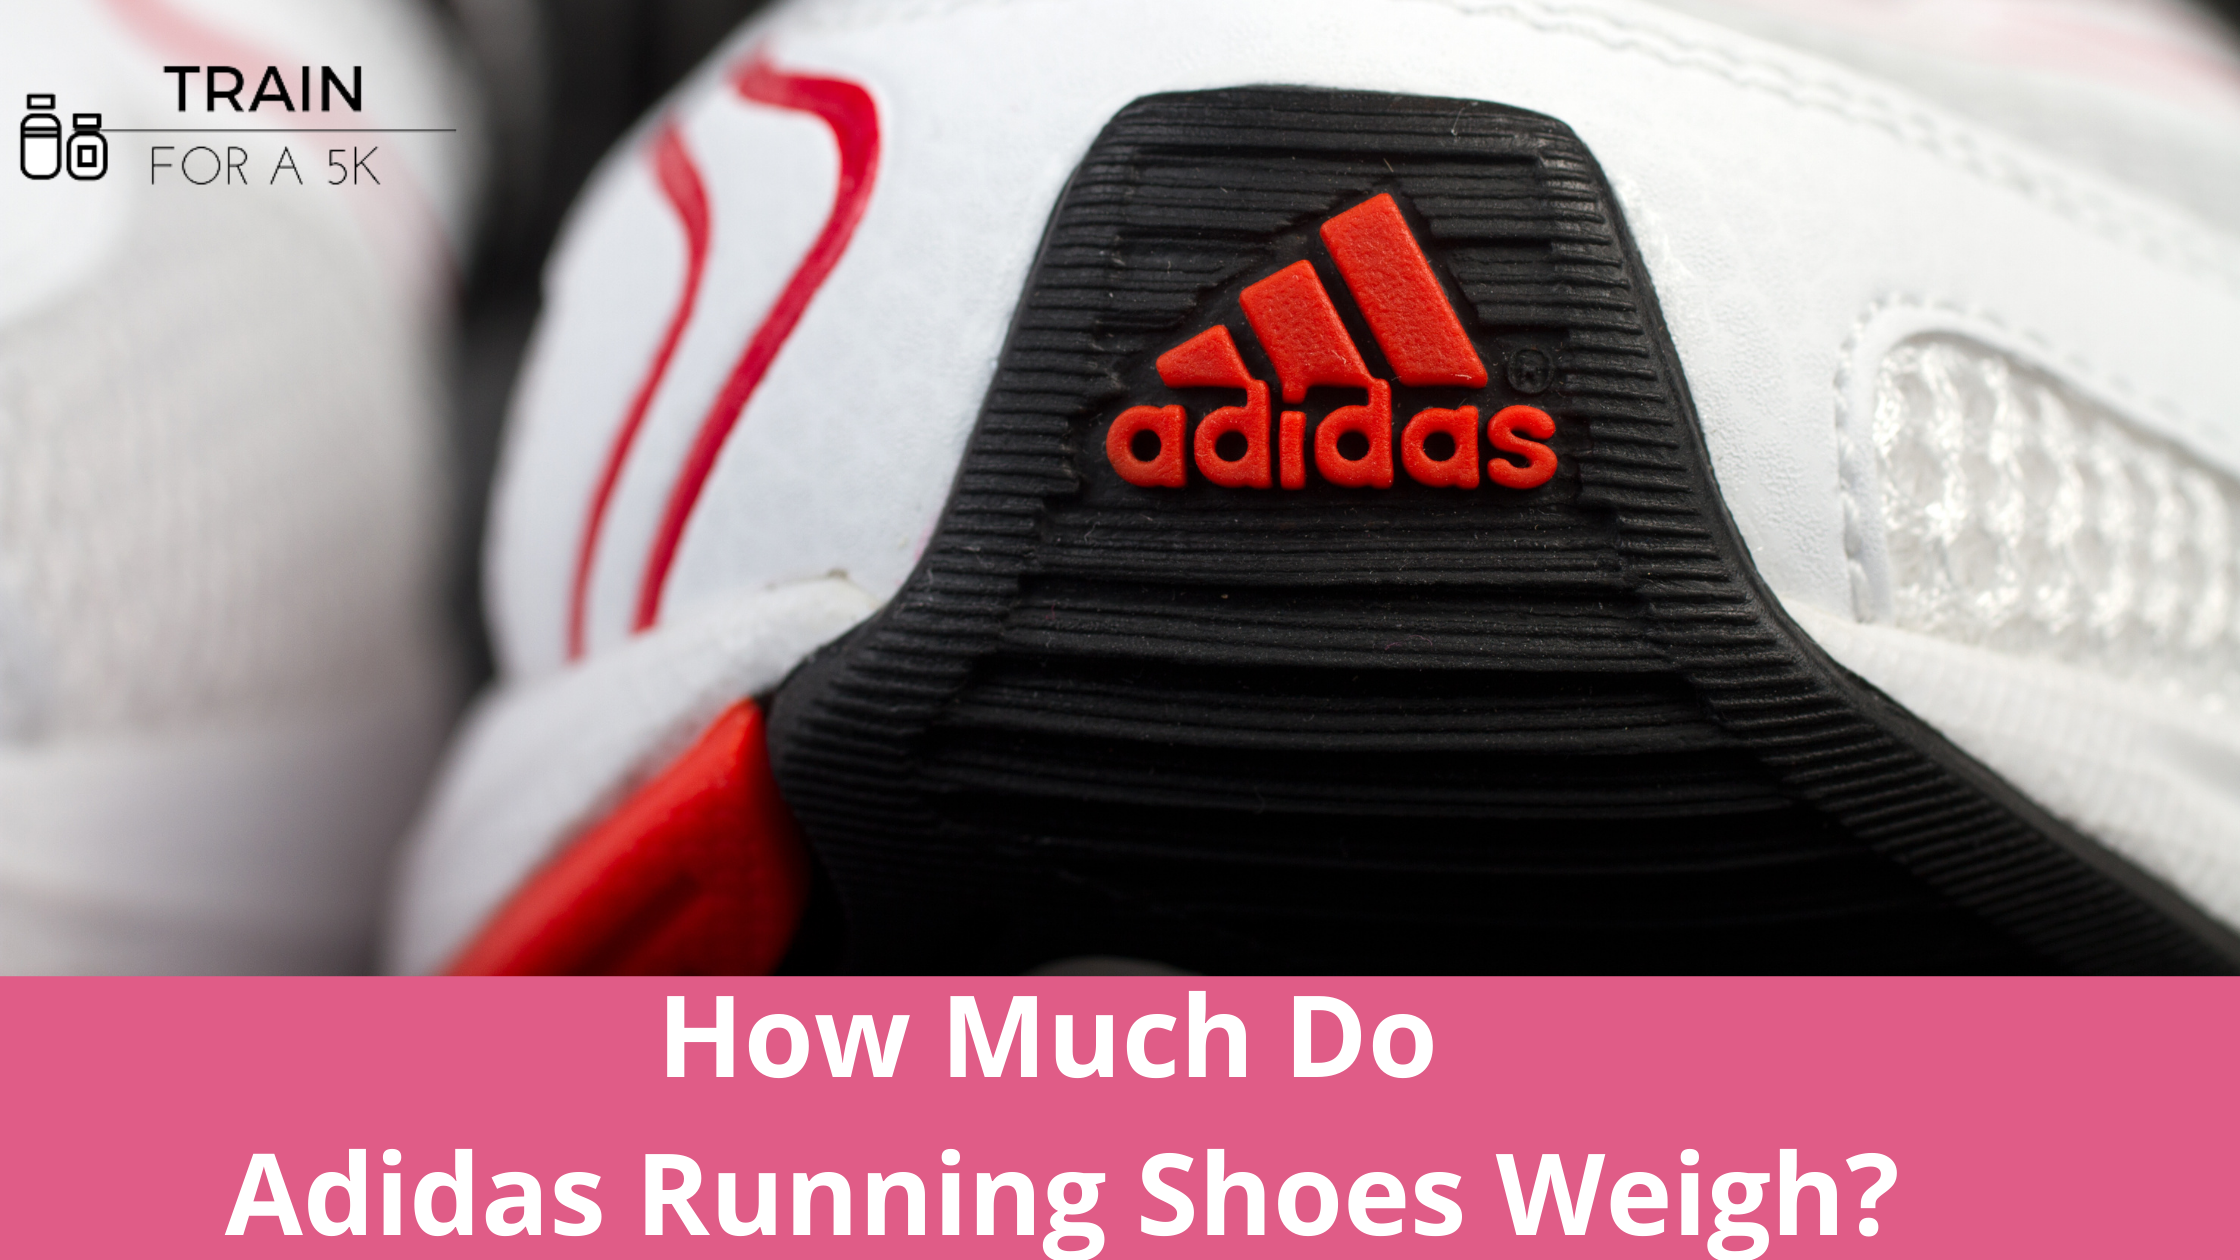 The average weight of an Adidas running shoe is 9.32 ounces in mens and 8.44 ounces in womens. The heaviest Adidas running shoe is the Ultra Boost and the lightest is the Adizero RC.